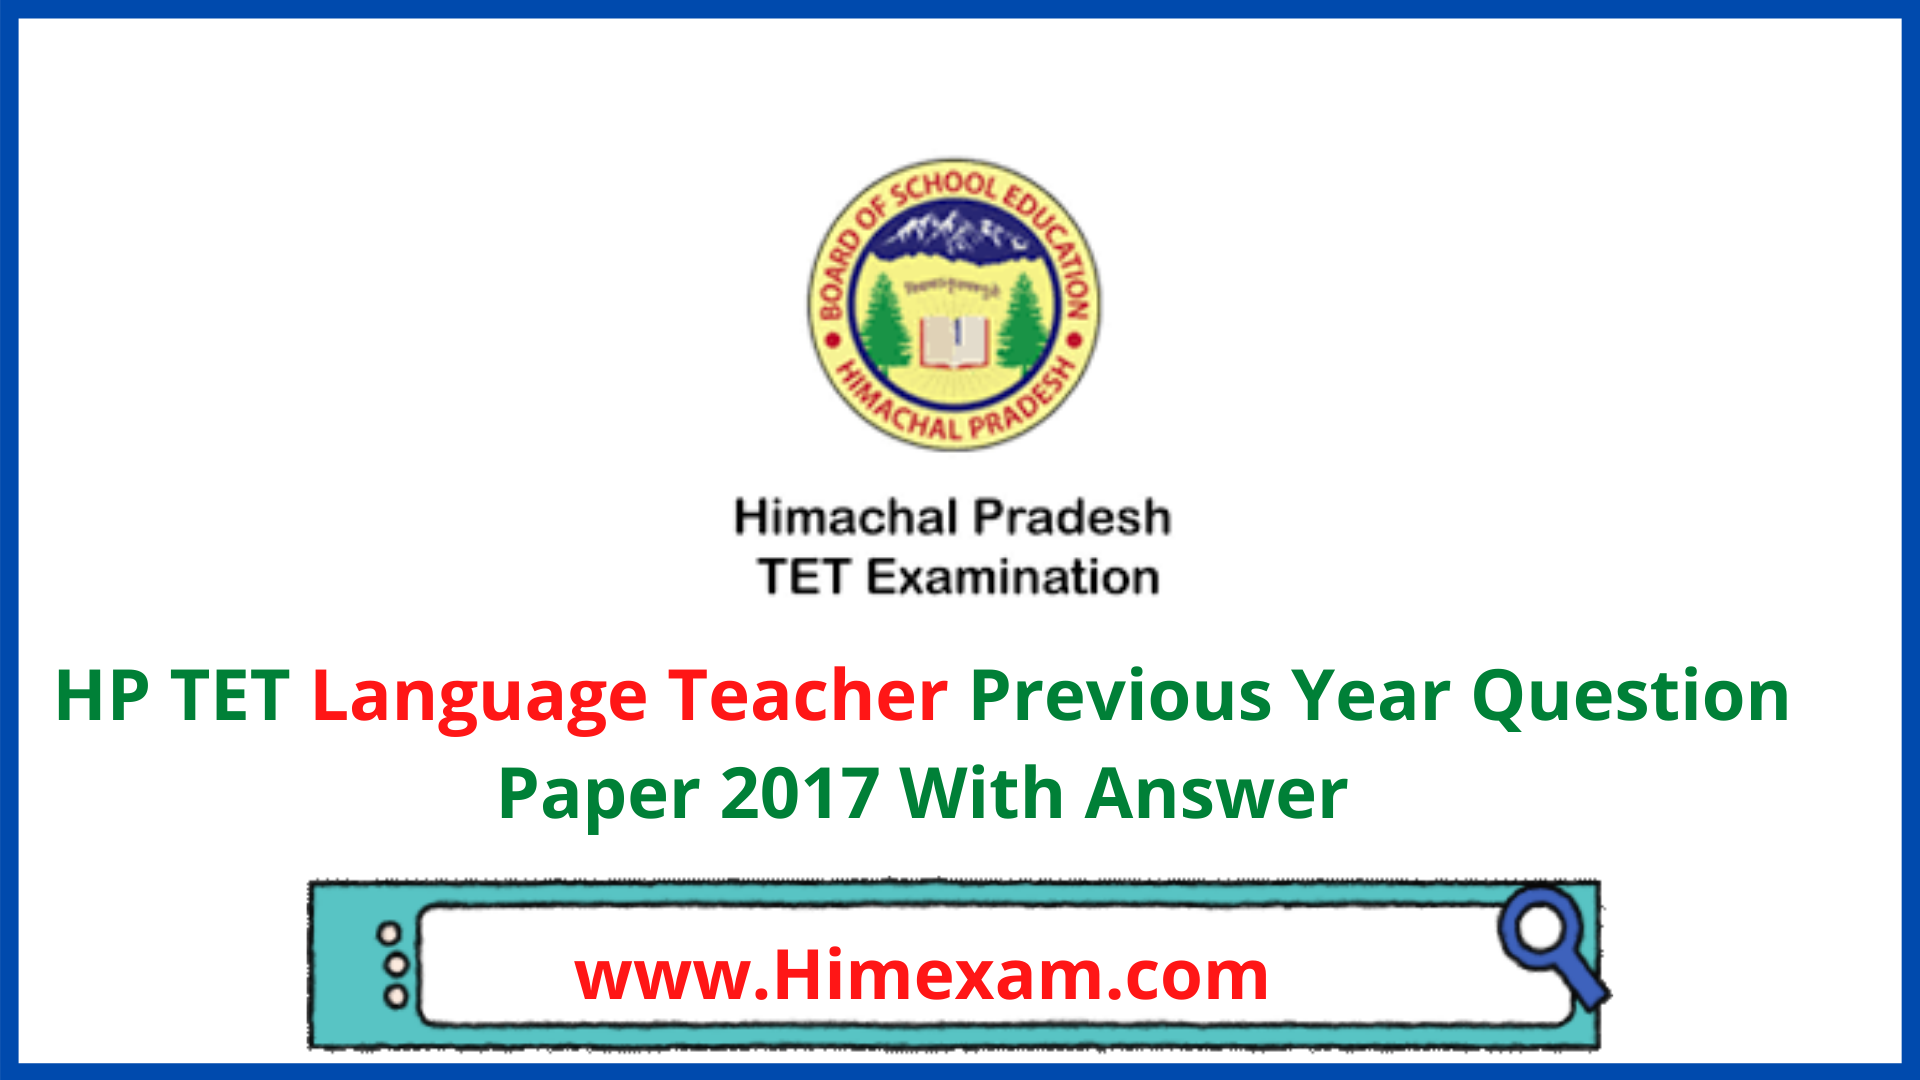 HP TET Language Teacher Previous Year Question Paper 2017 With Answer